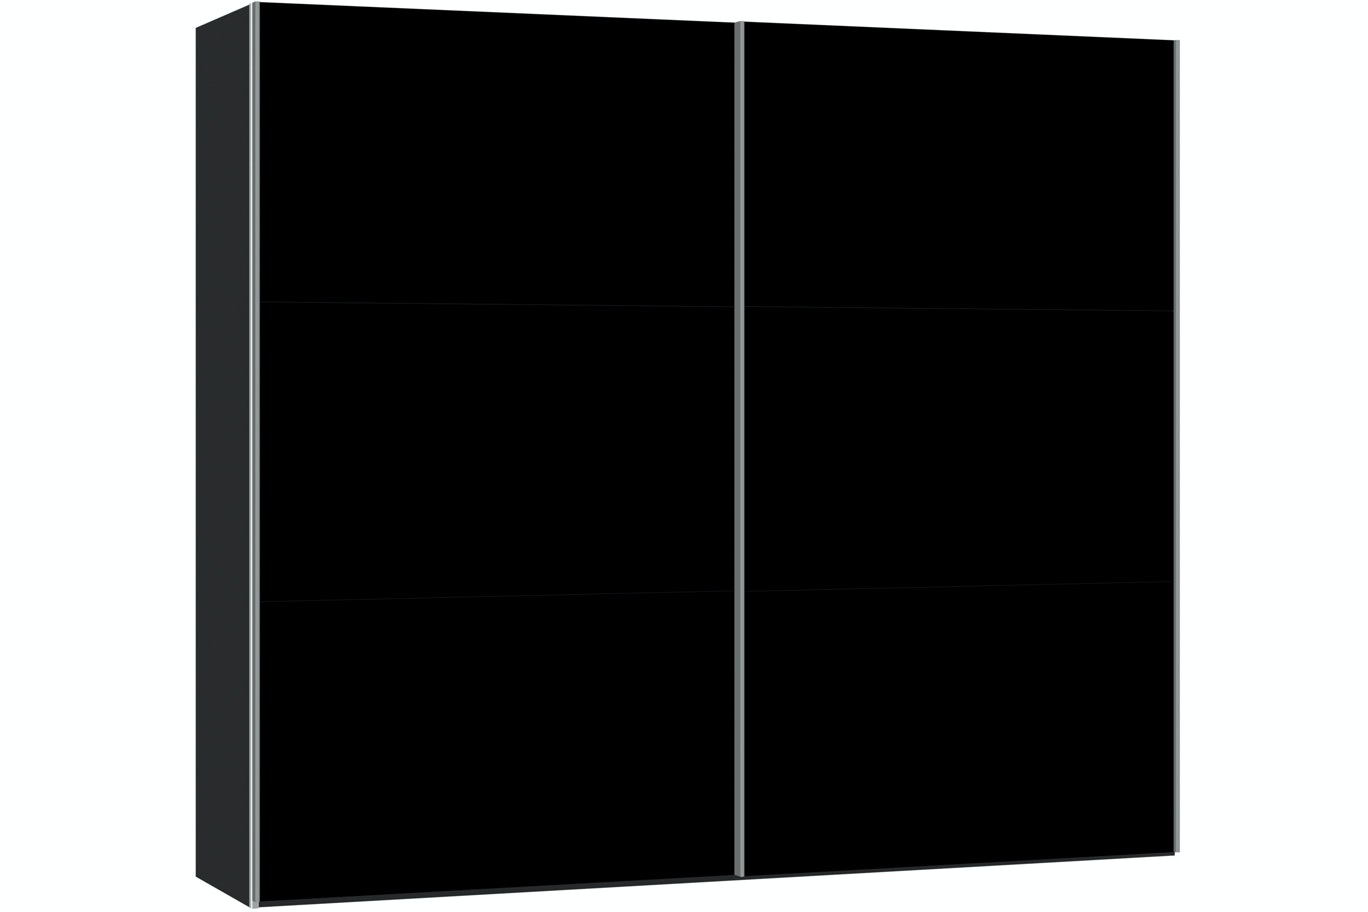 Janet Sliding Wardrobe 253Cm | Black Glass